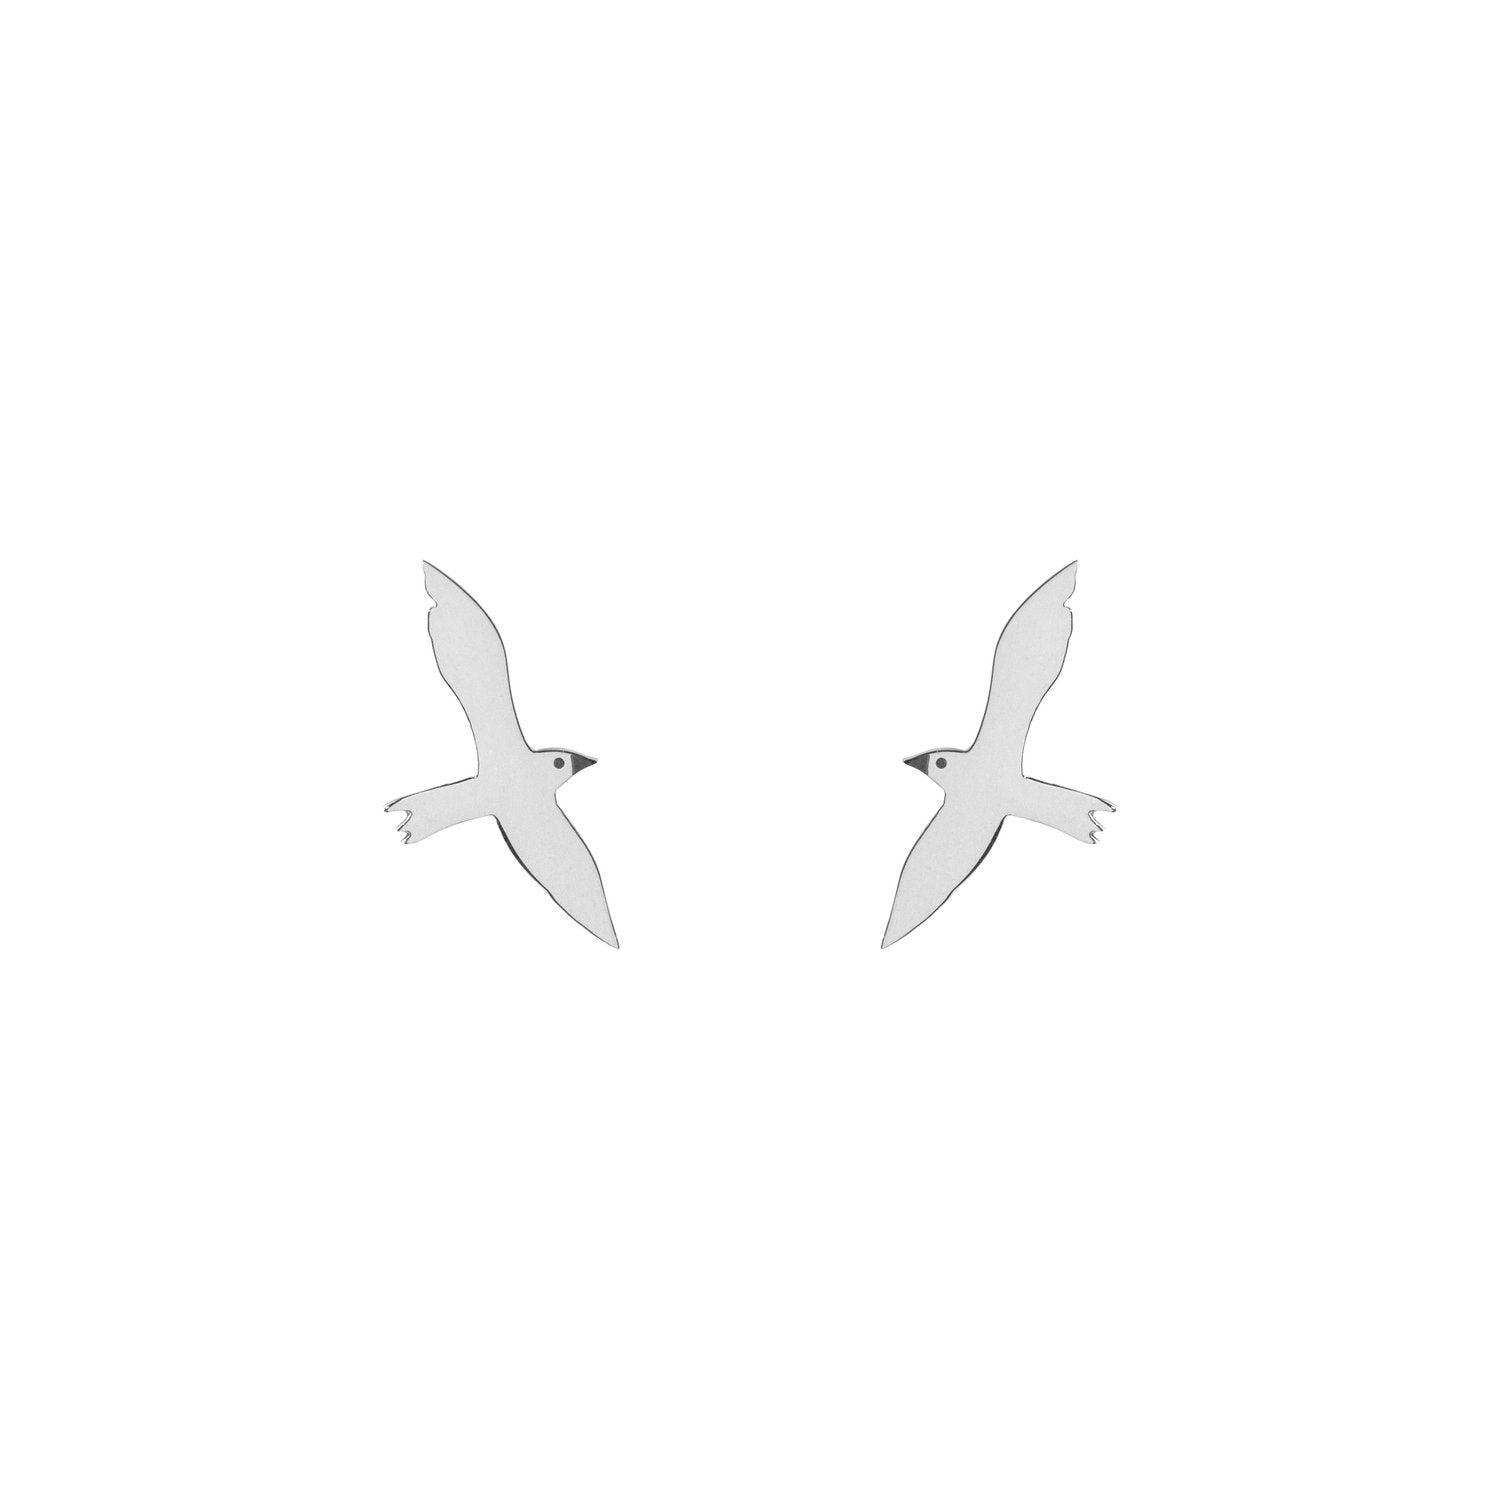 Seagull Stud Earrings